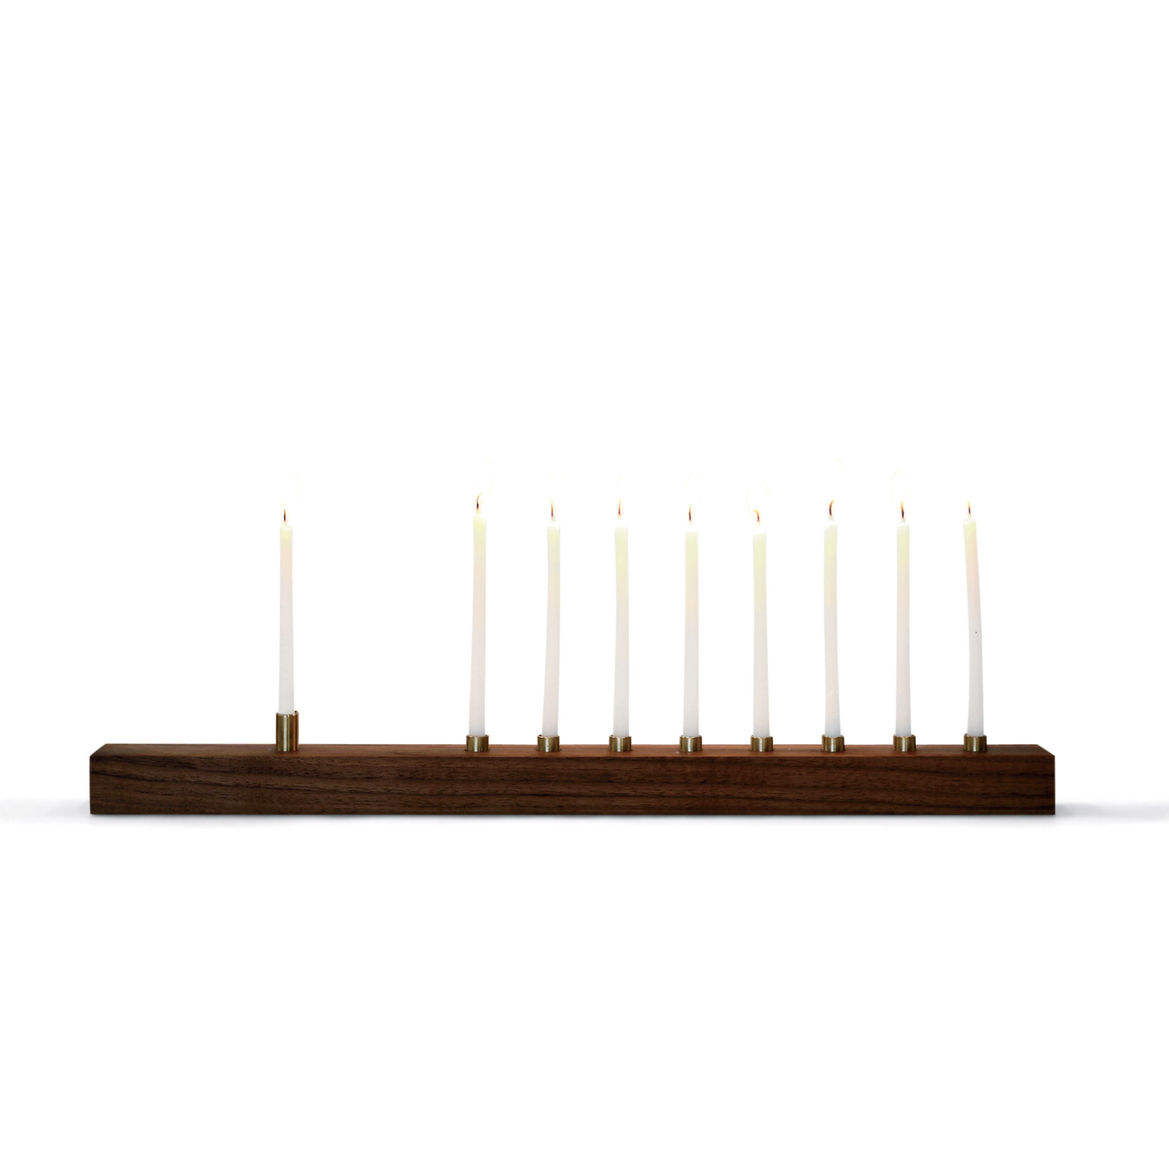 Holiday gift guide 2016 Dwell Store Graduates picks like the Marmol Radziner walnut menorah